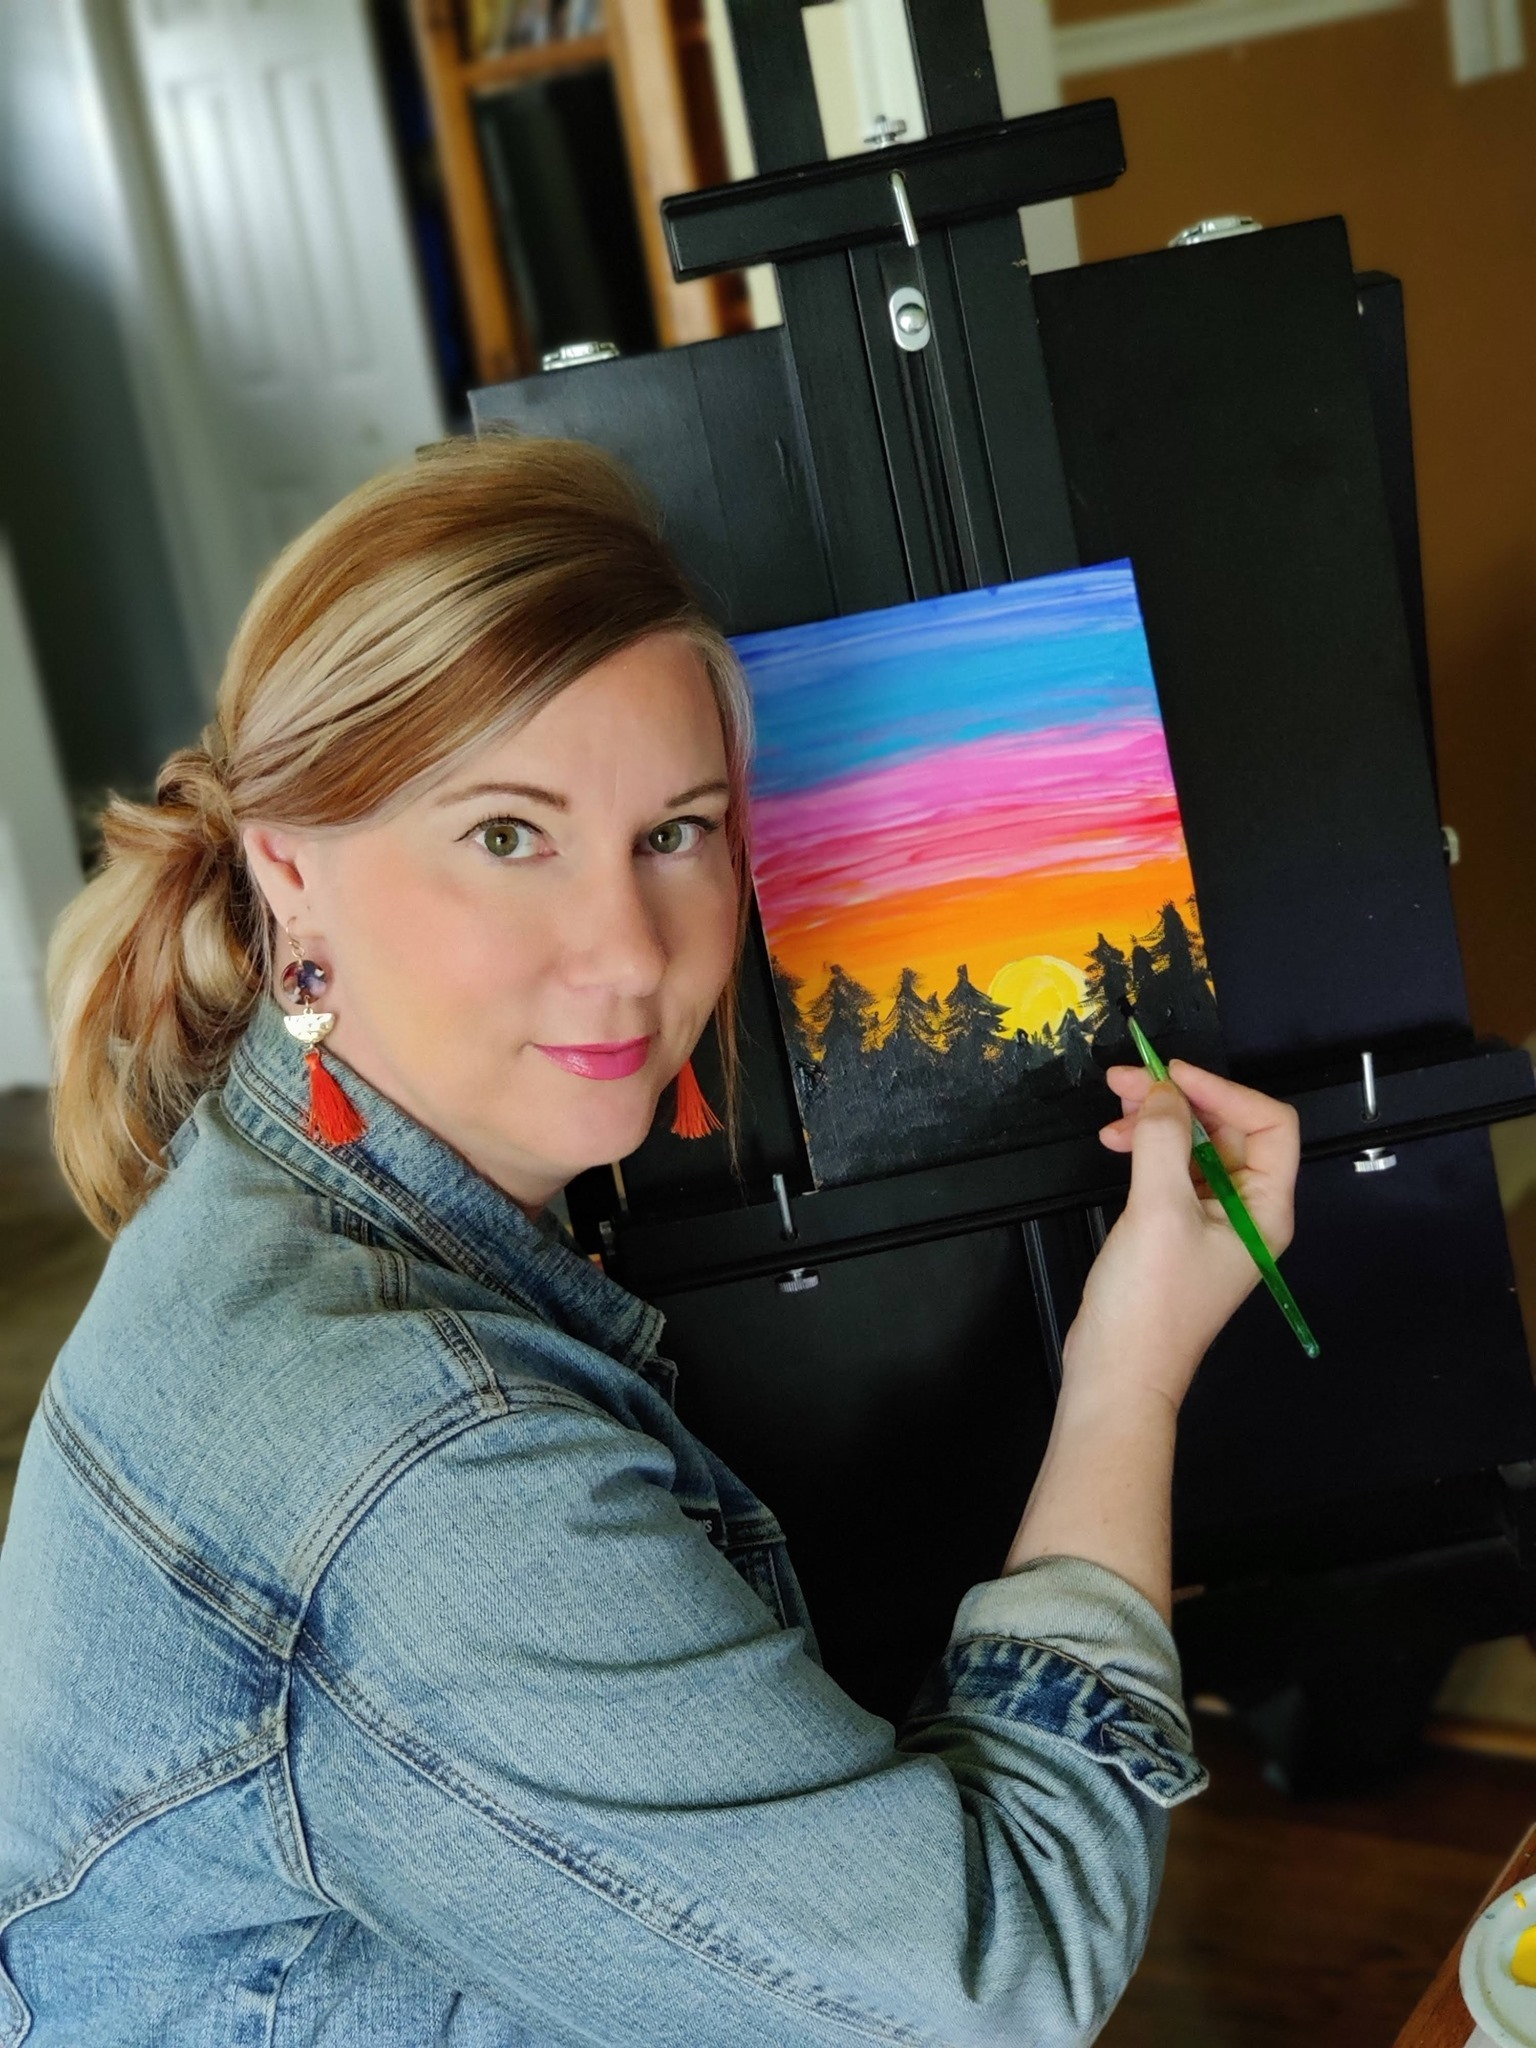 #1 Painting with Heather deHaan